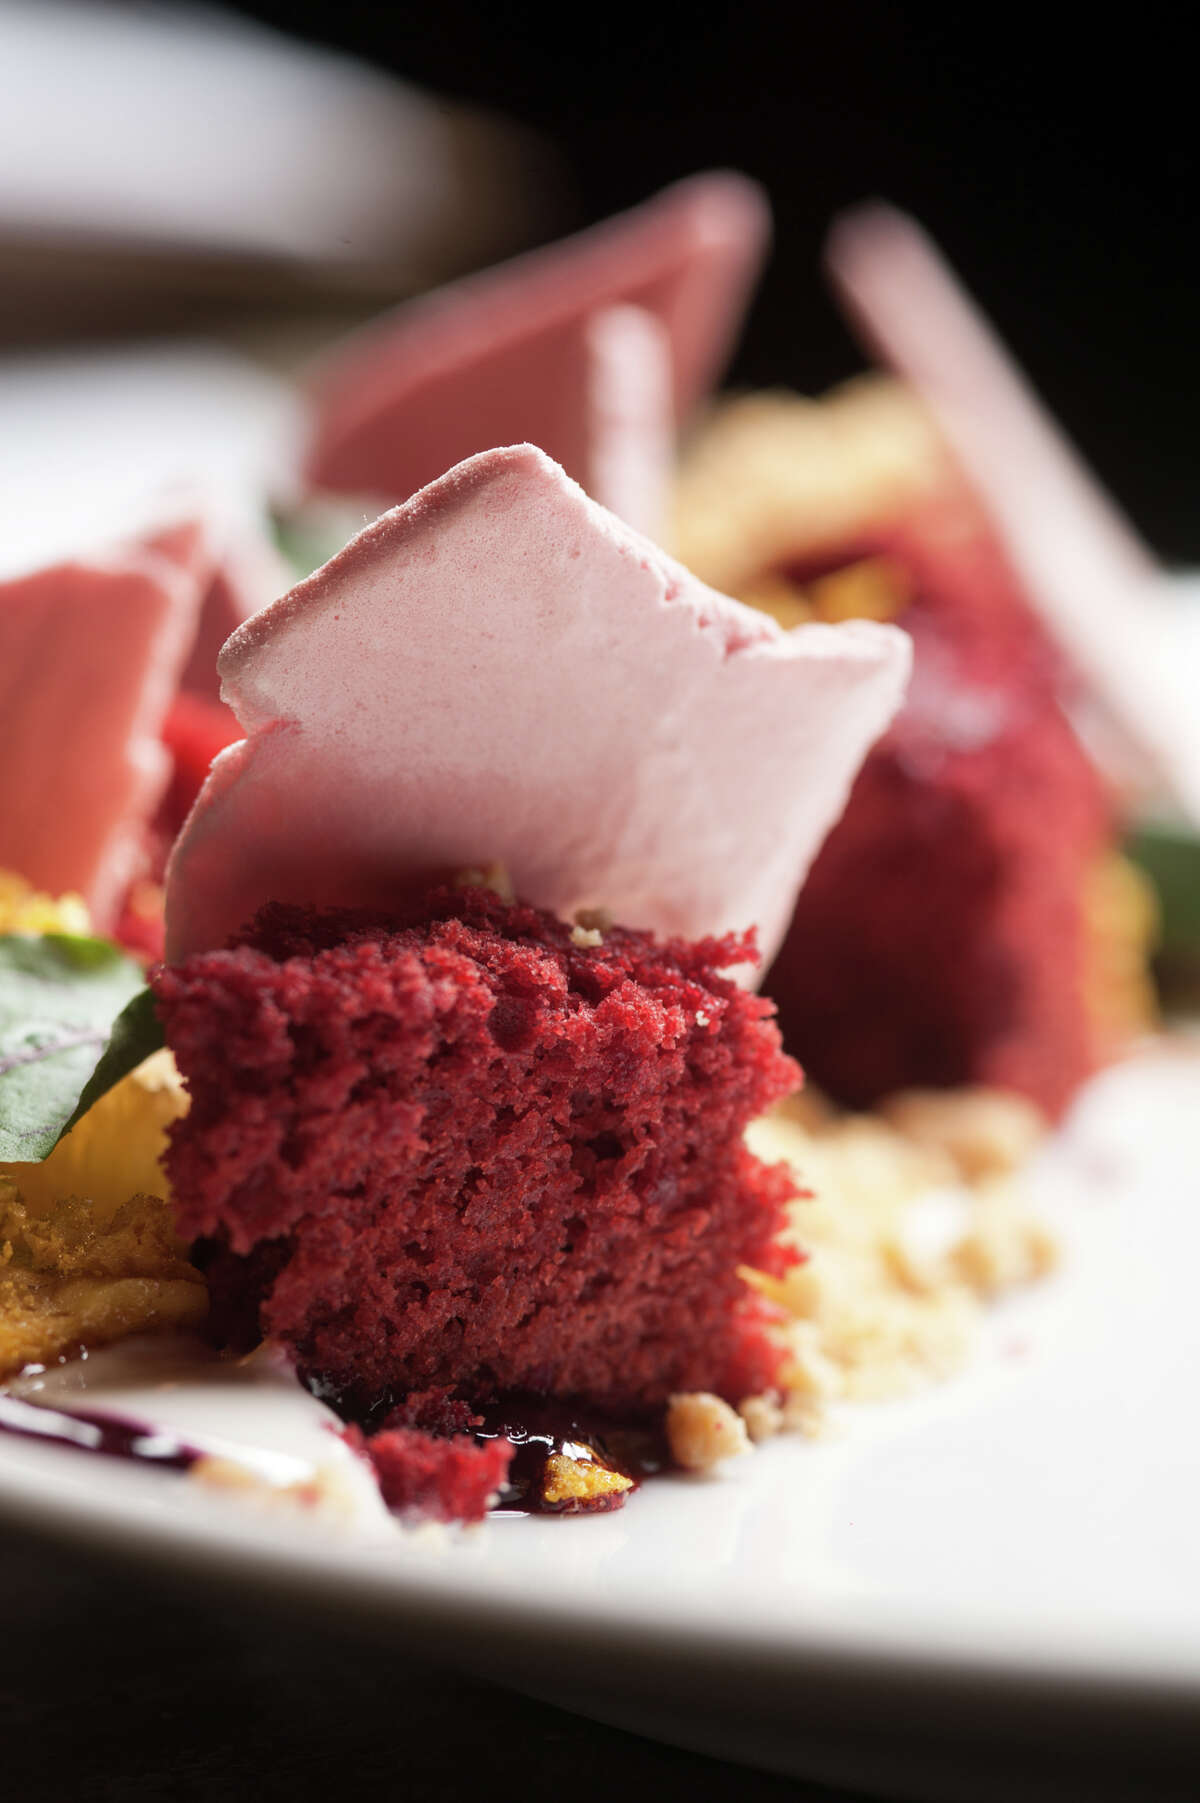 Beet cake from The Monterery at 1127 S. St,. Marys St. in the Southtown area.